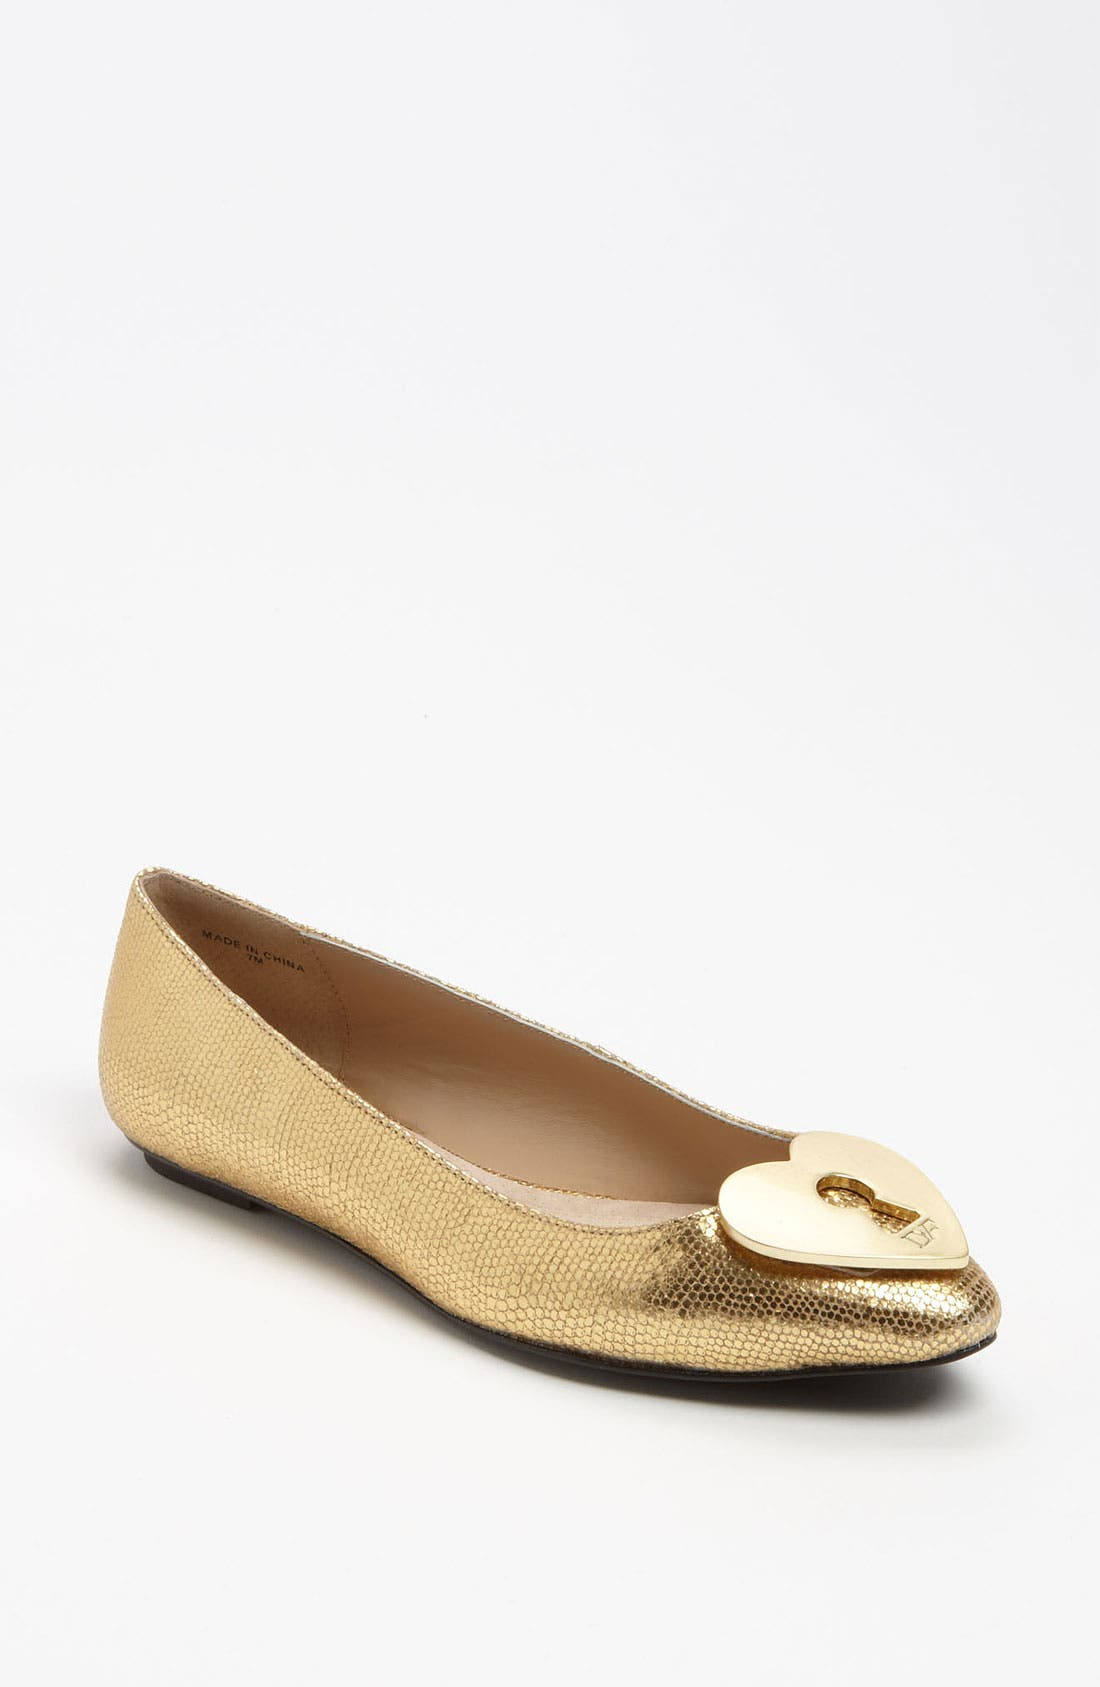 Alternate Image 1 Selected - Diane von Furstenberg 'Malia' Flat